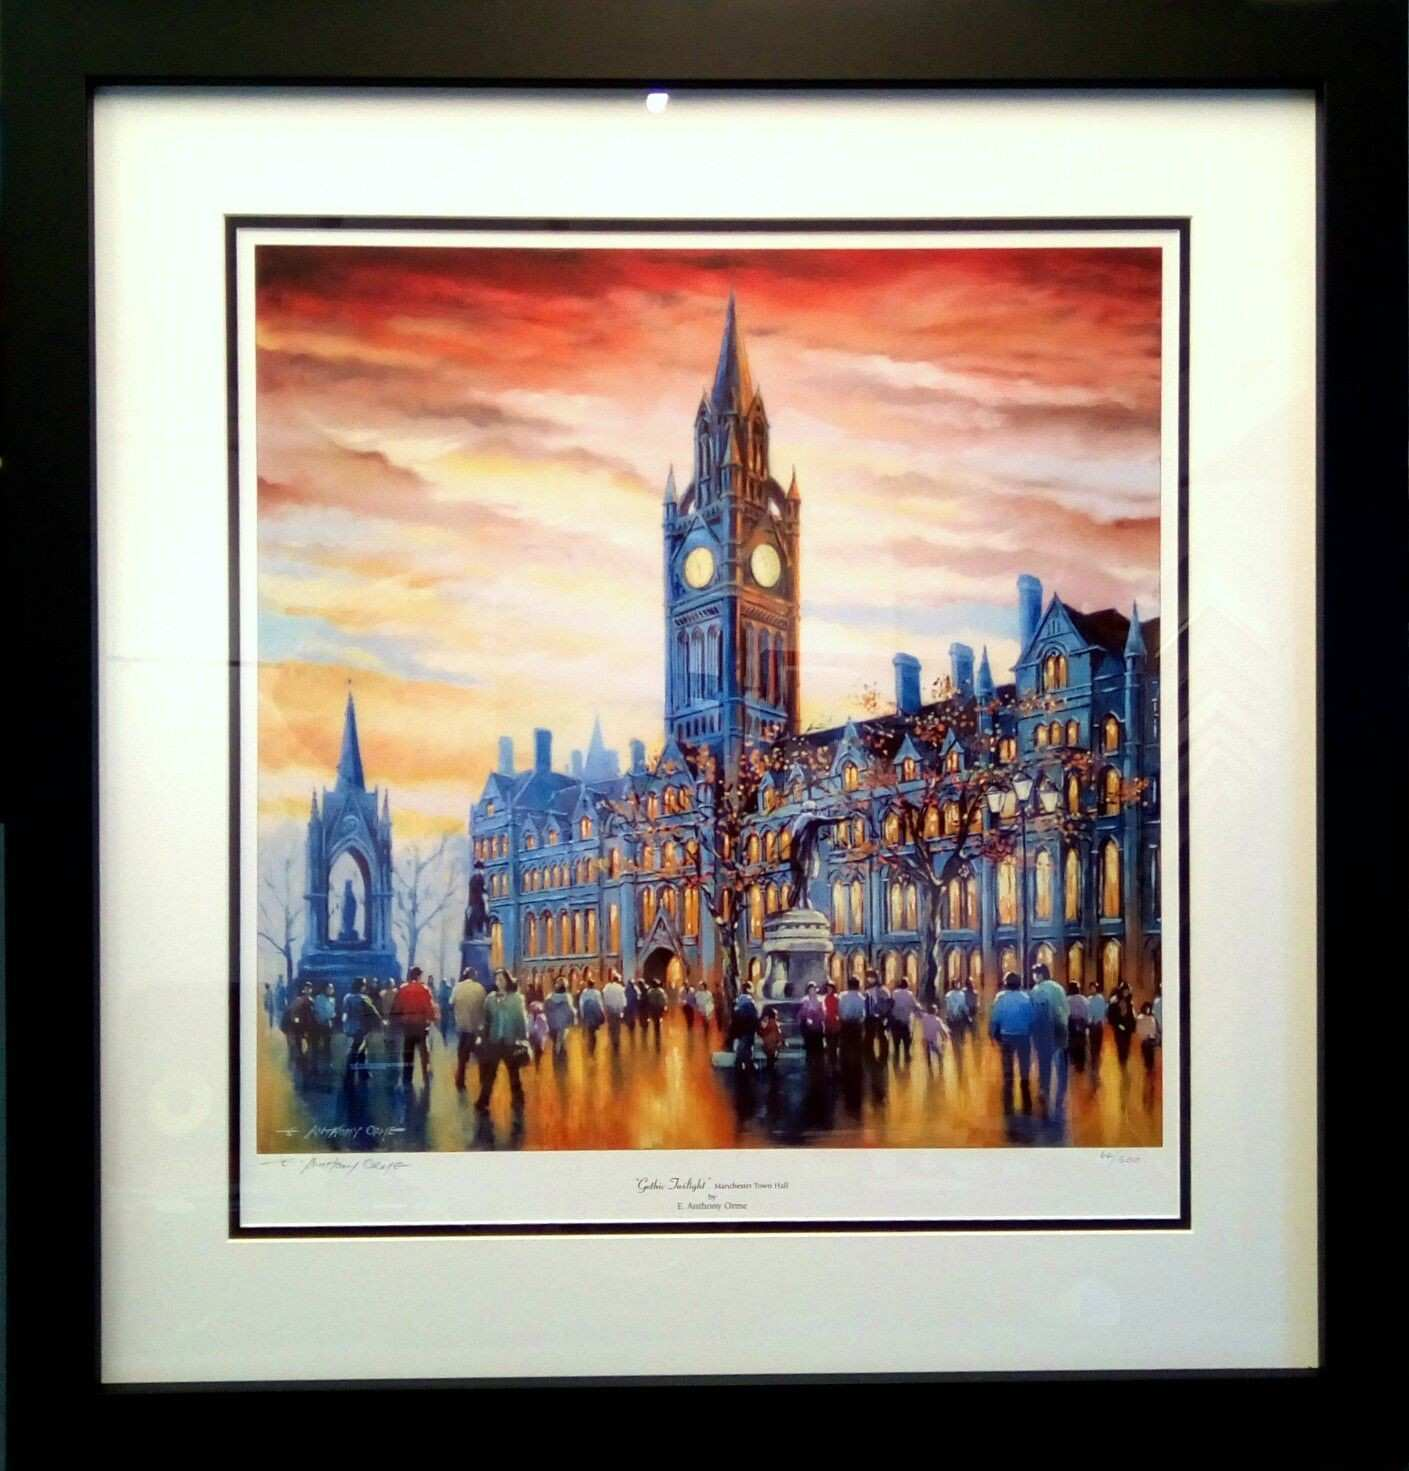 Another framing order ready for Santa to deliver Manchester Town